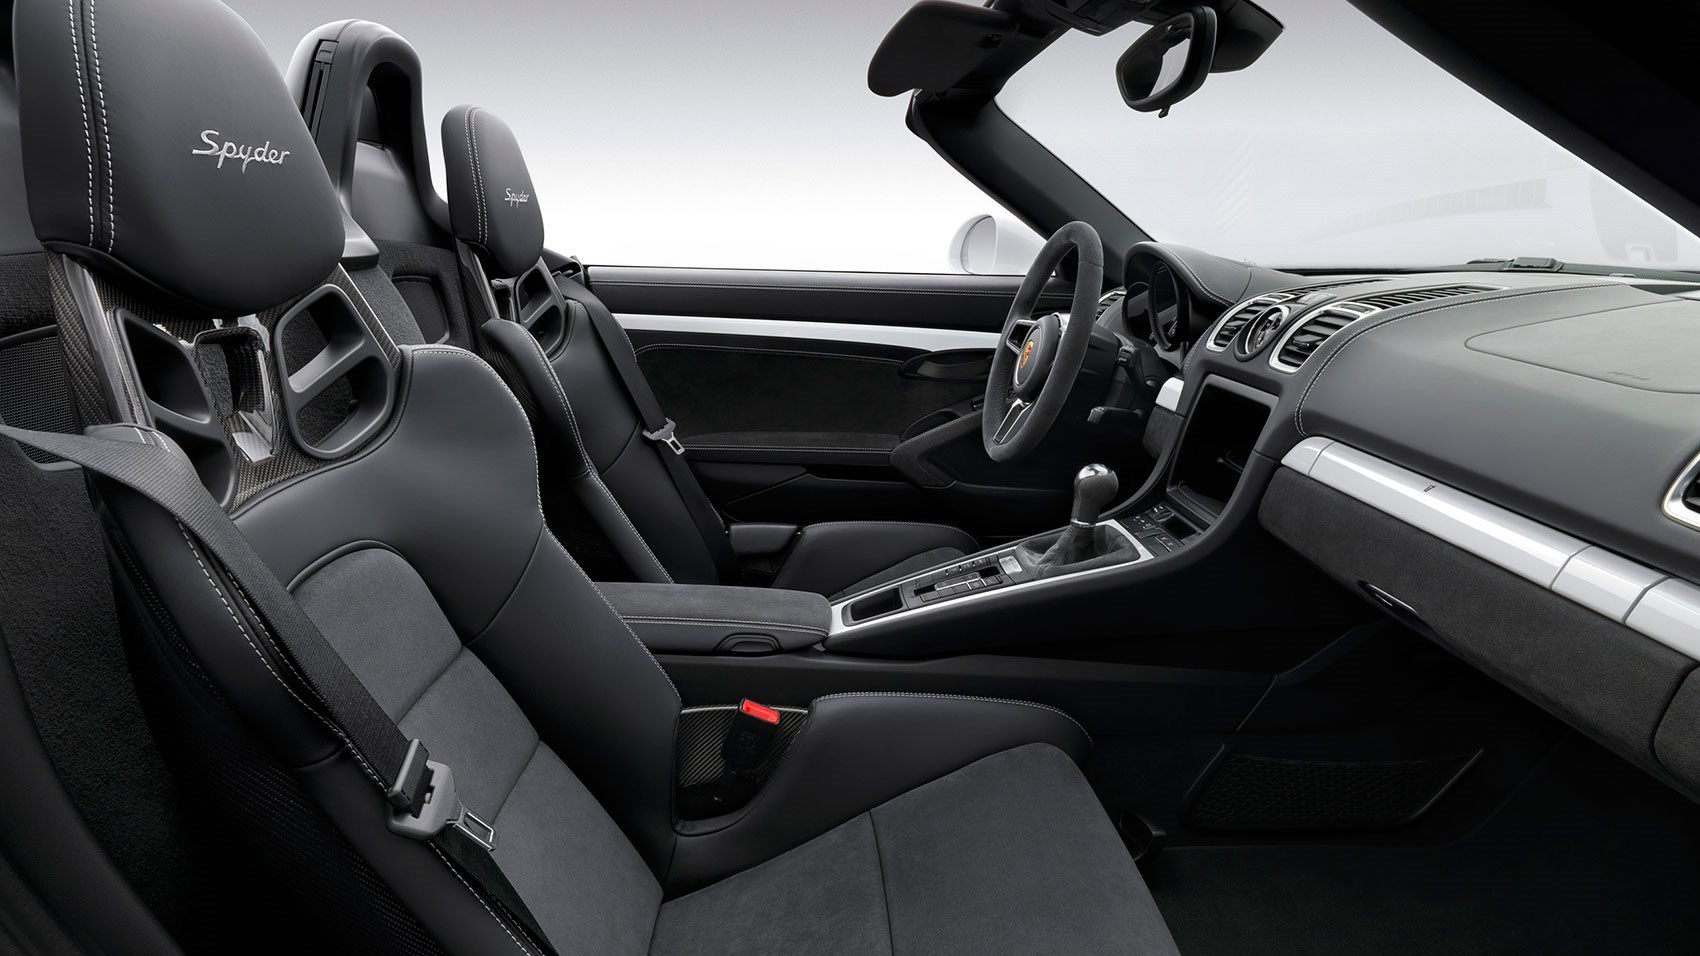 Peugeot 208 Gti 2012 First Official Pictures Car Magazine Boxster Engine Diagram Inside Cabin Of Spyder Largely Business As Usual